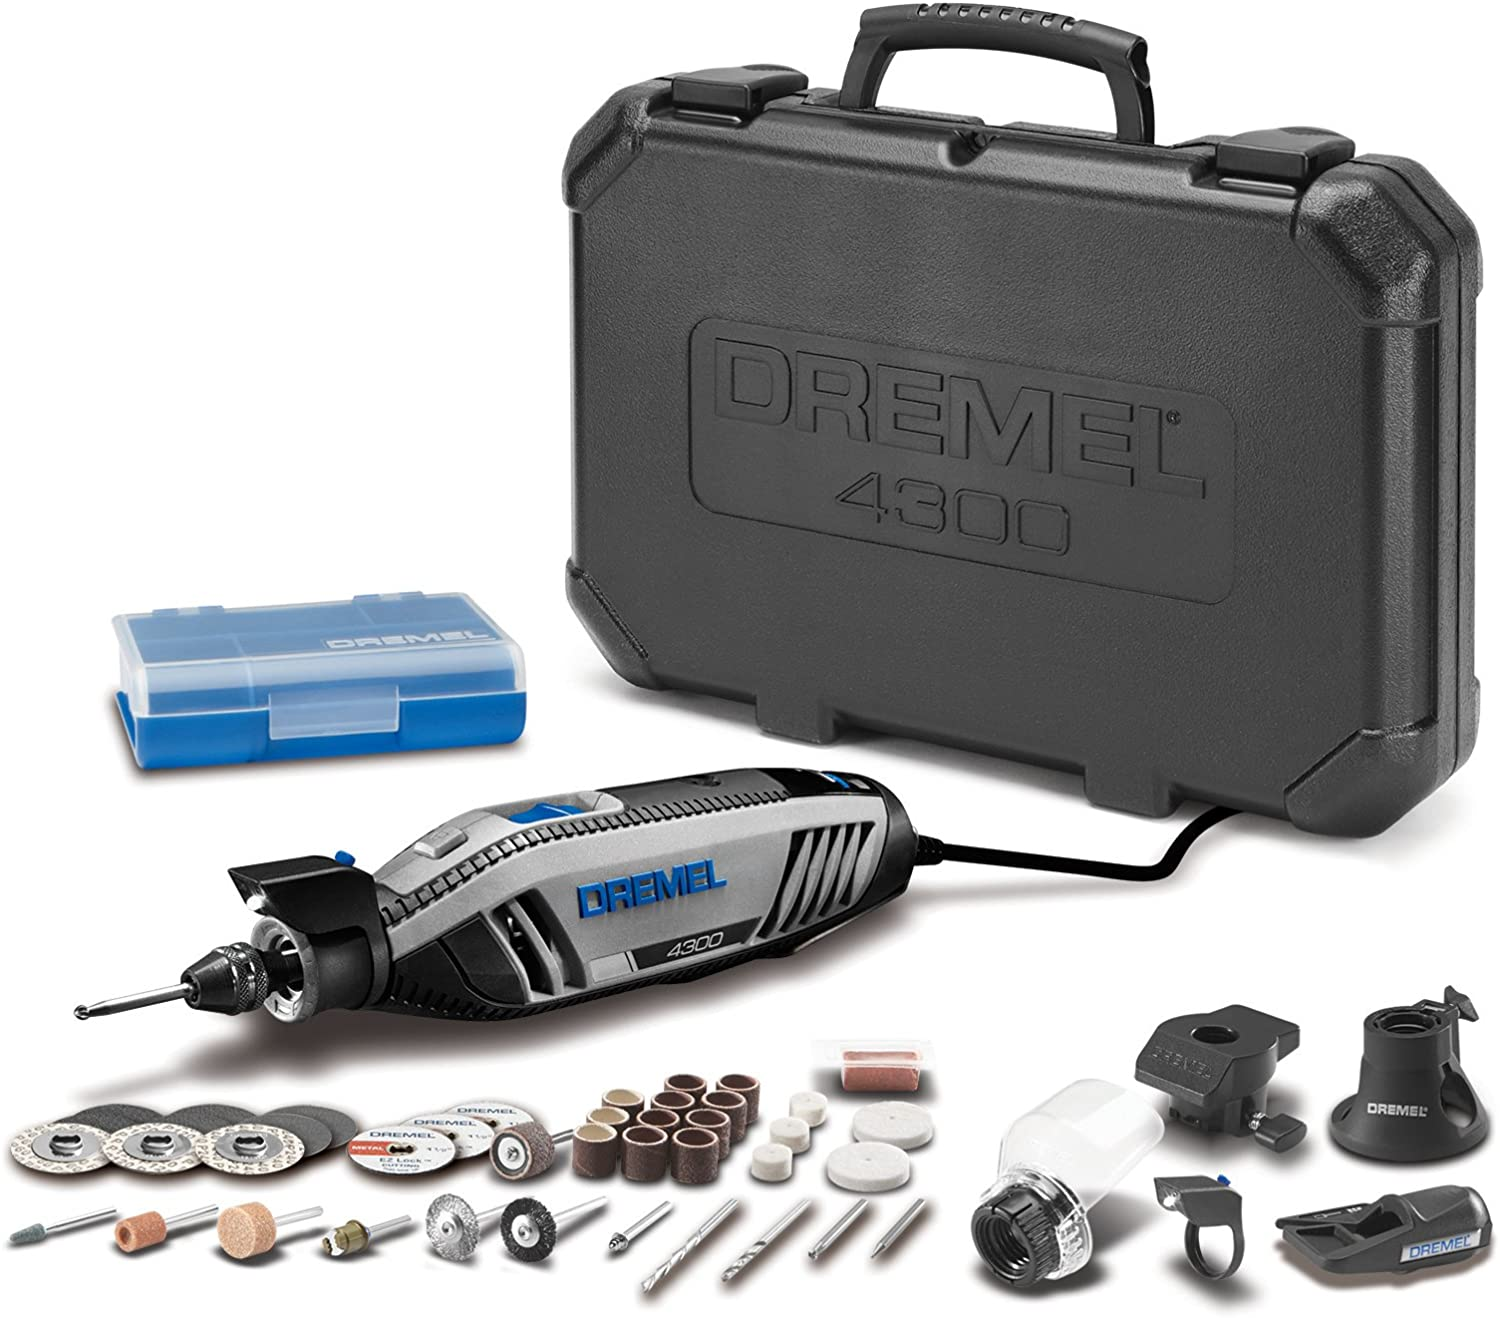 Dremel 4300-5/40 High Performance Rotary Tool Kit with LED Light- 5 Attachments & 40 Accessories- Engraver, Sander, and Polisher- Perfect for Grinding, Cutting, Wood Carving, Sanding, and Engraving - -